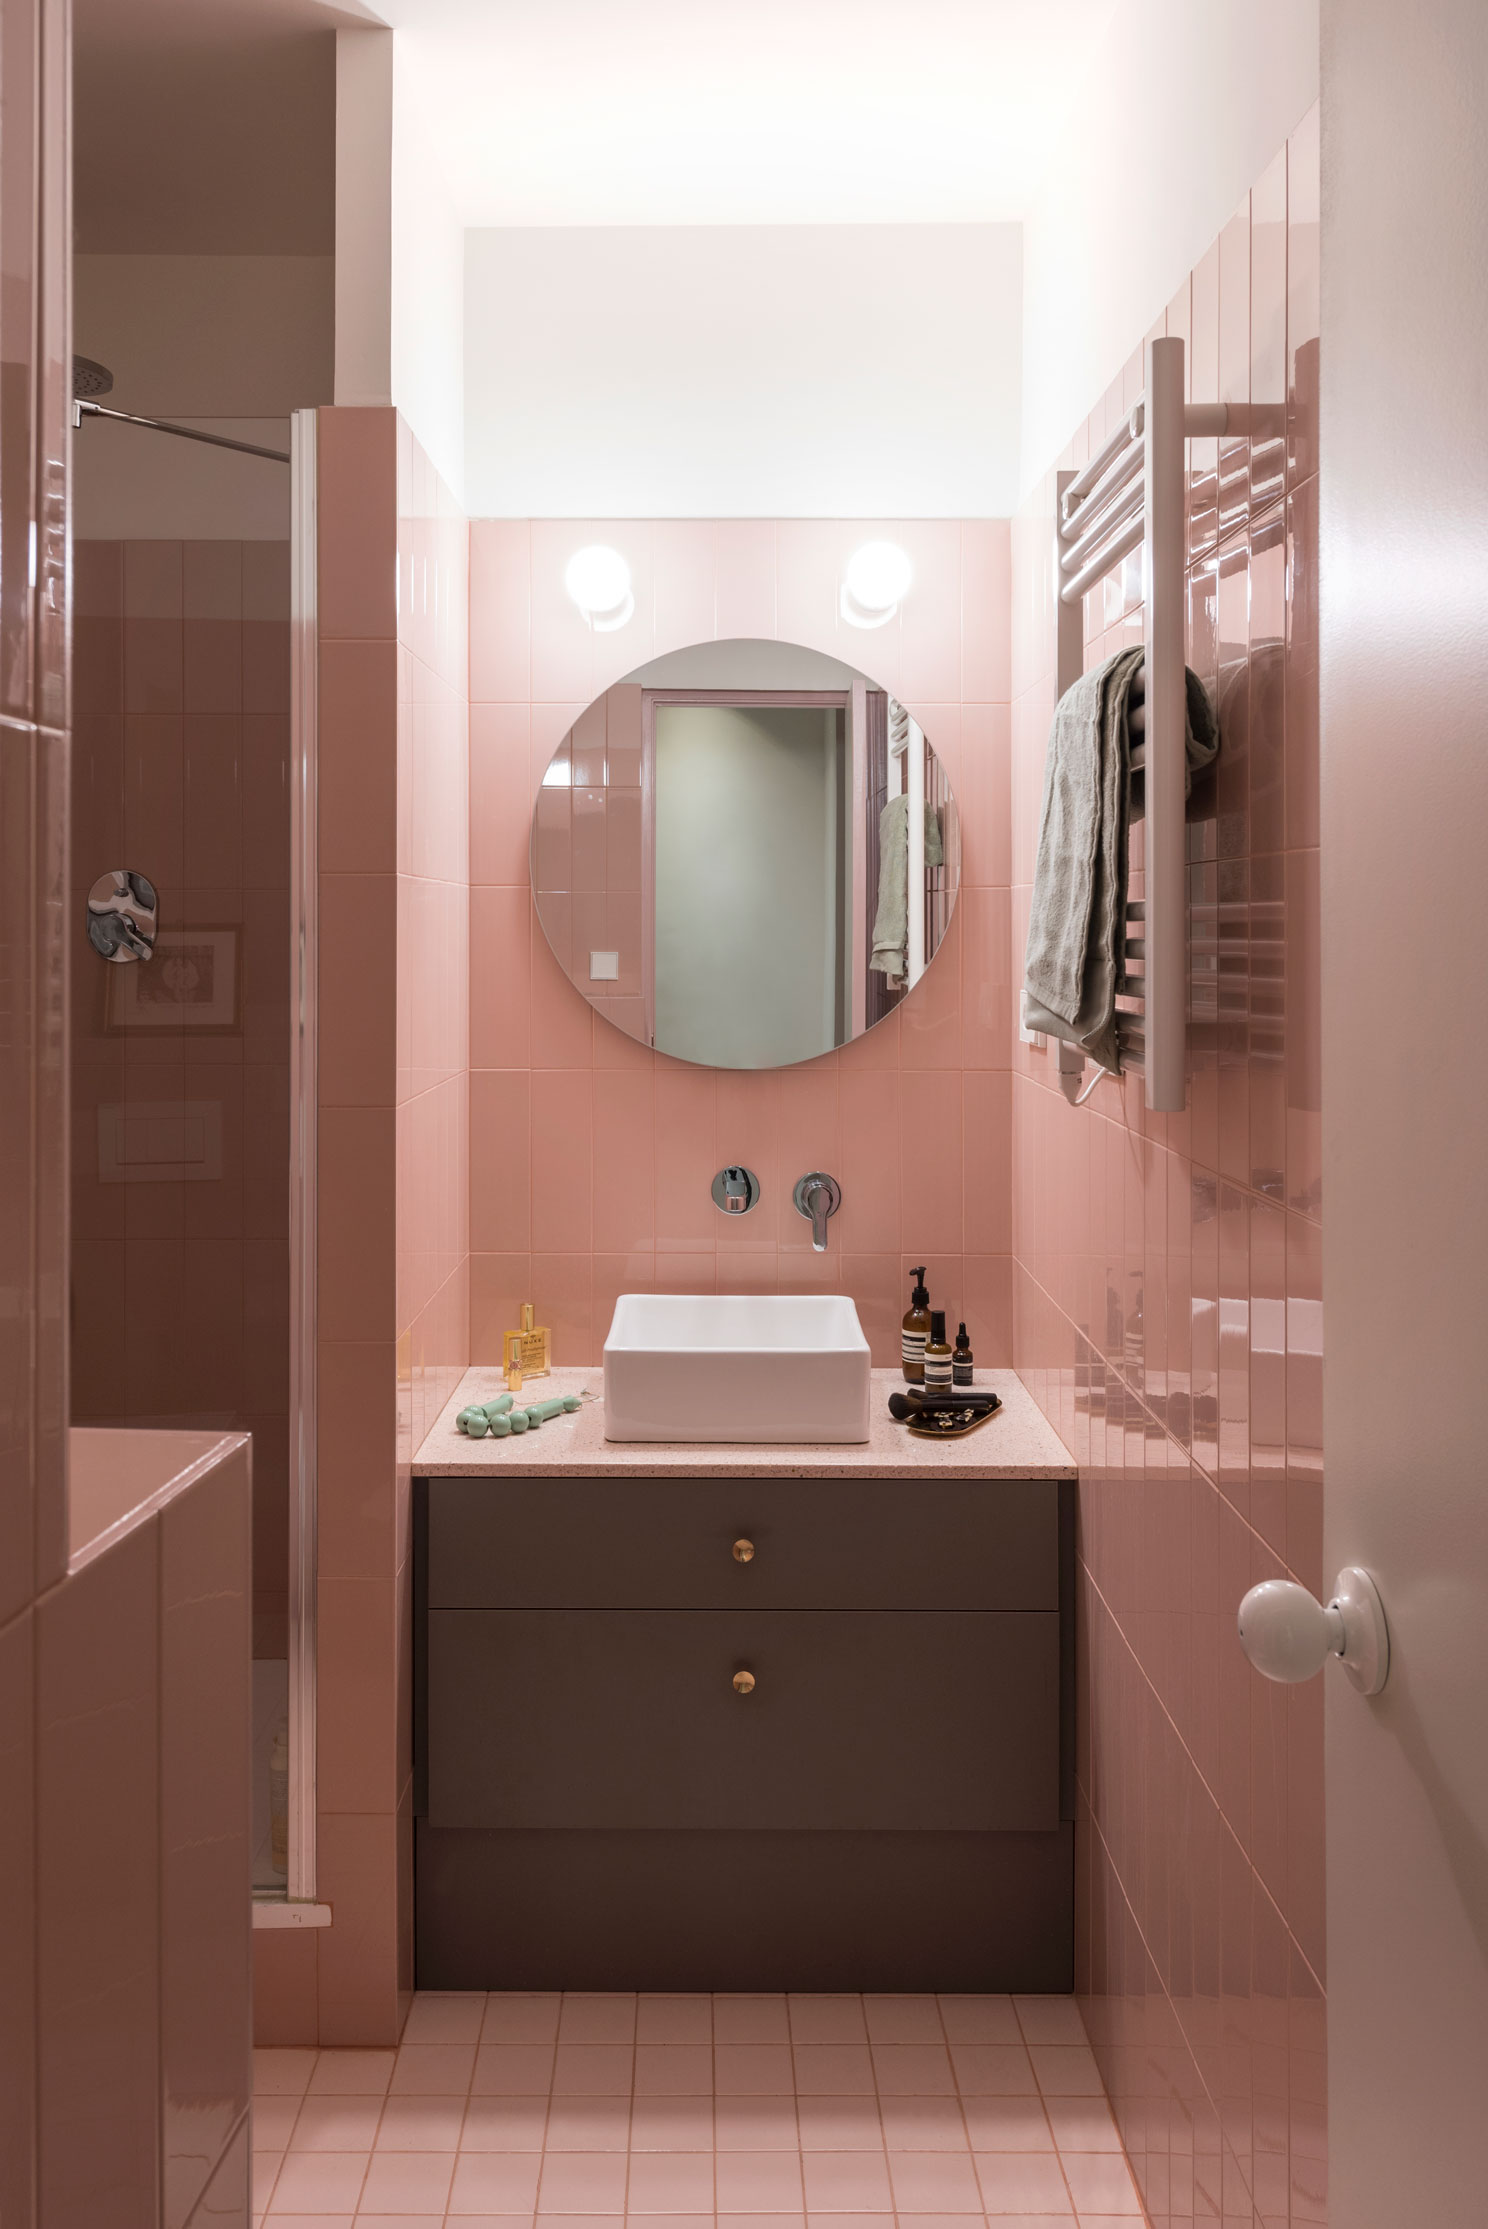 The master bathroom follows the subtle pink palette , clad with vertical 10x30cm ceramics by Ribesalbes and 10x10 floor tiles by  Vogue. All the counters are made with a pink terrazzo-like quartz finish.